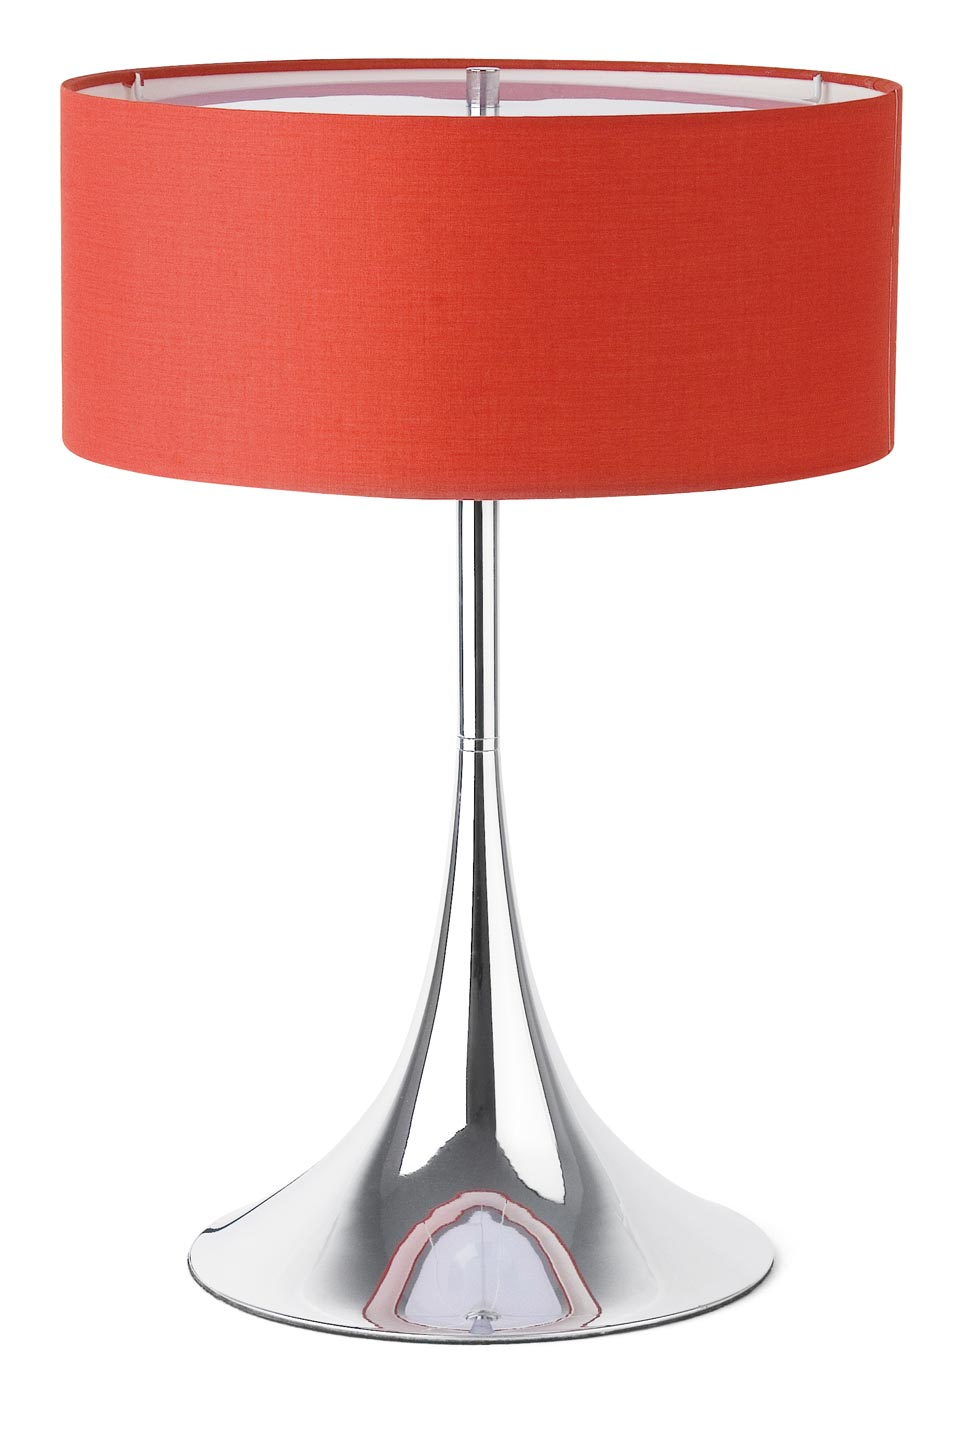 Sixti 60s-style chrome and red fabric table lamp | Faro - Réf ...